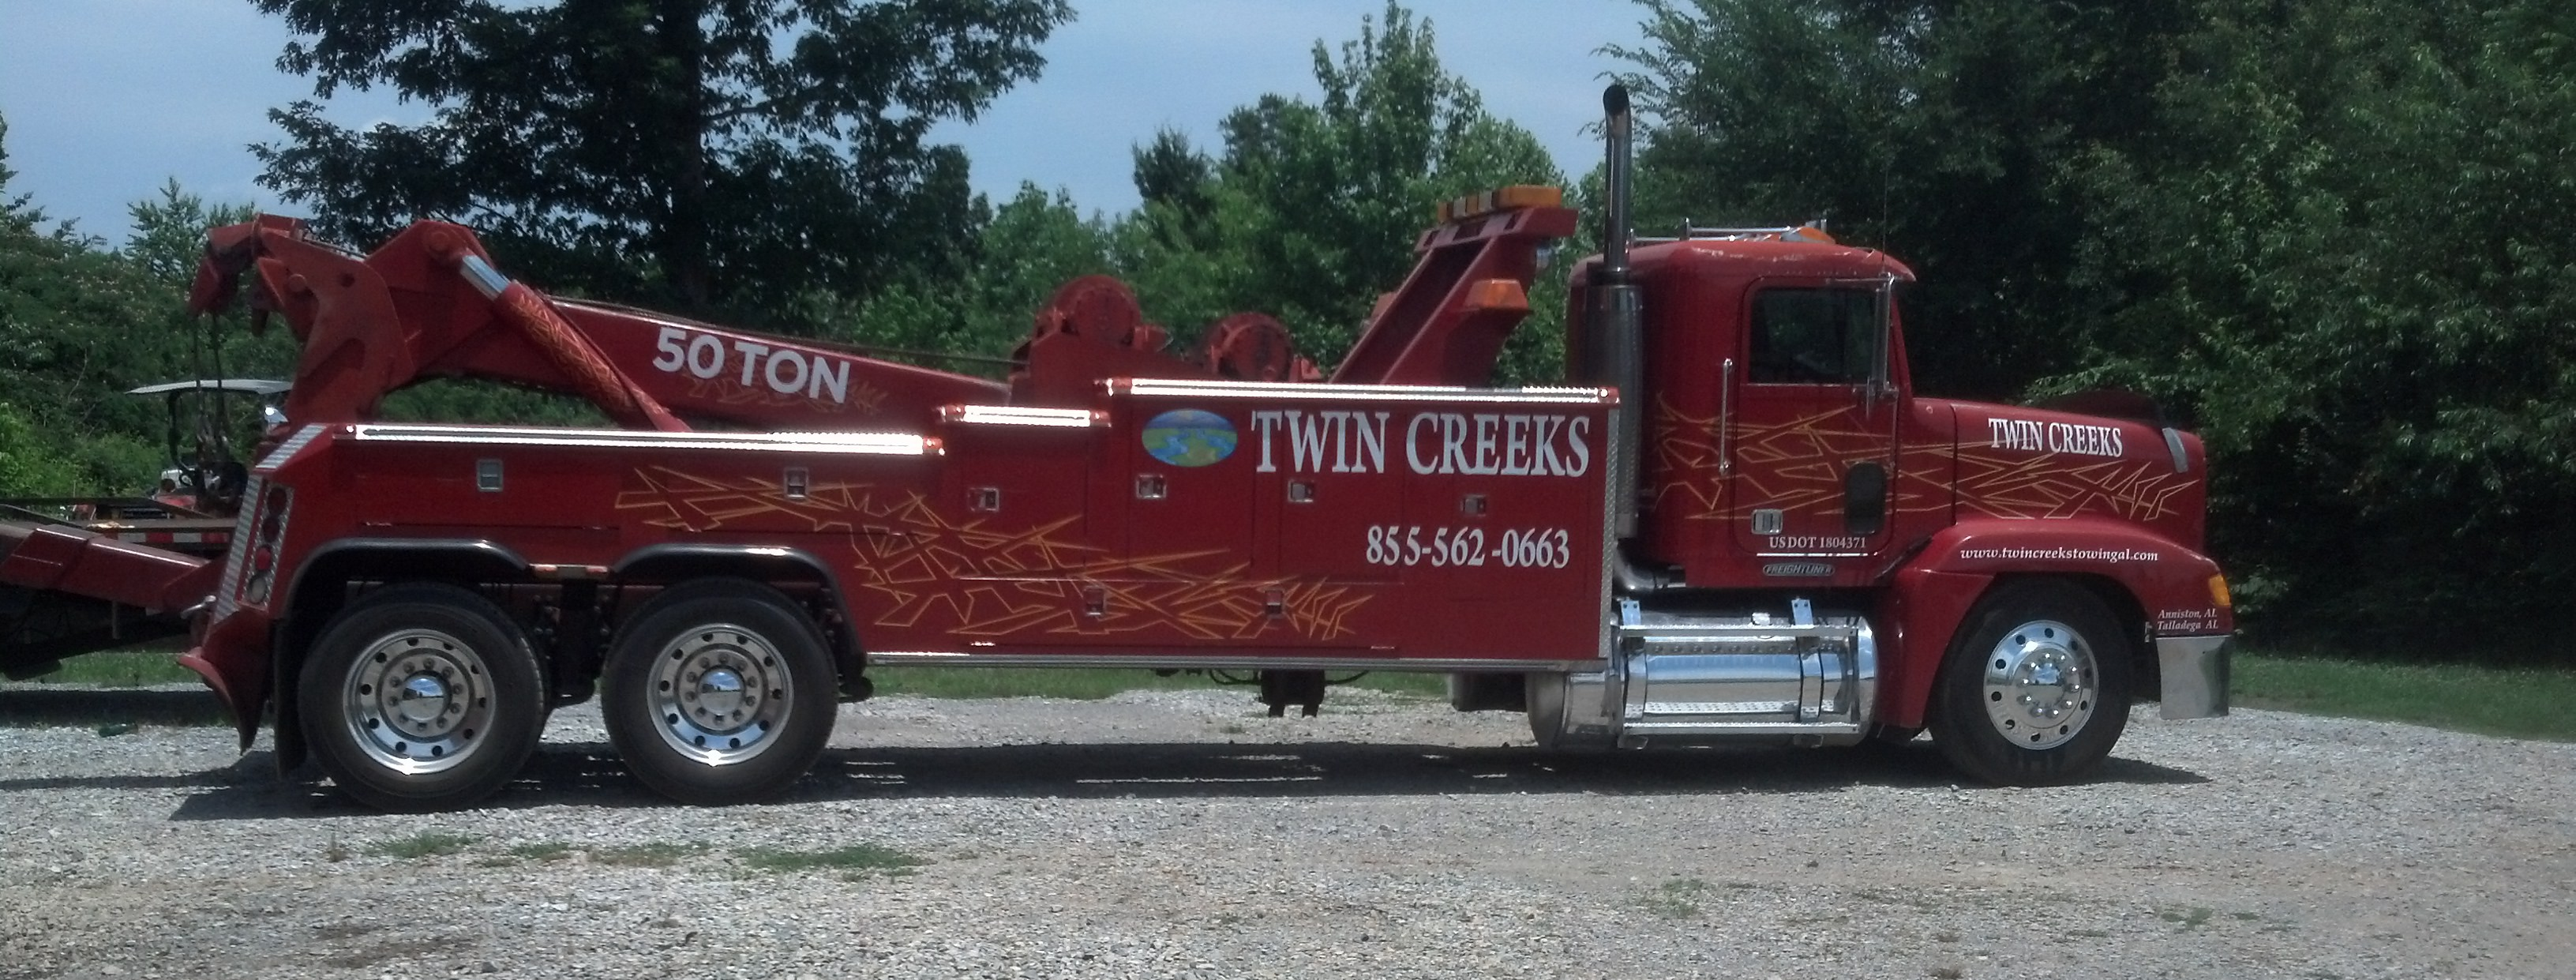 Tractor Trailer Towing Services for Anniston, AL